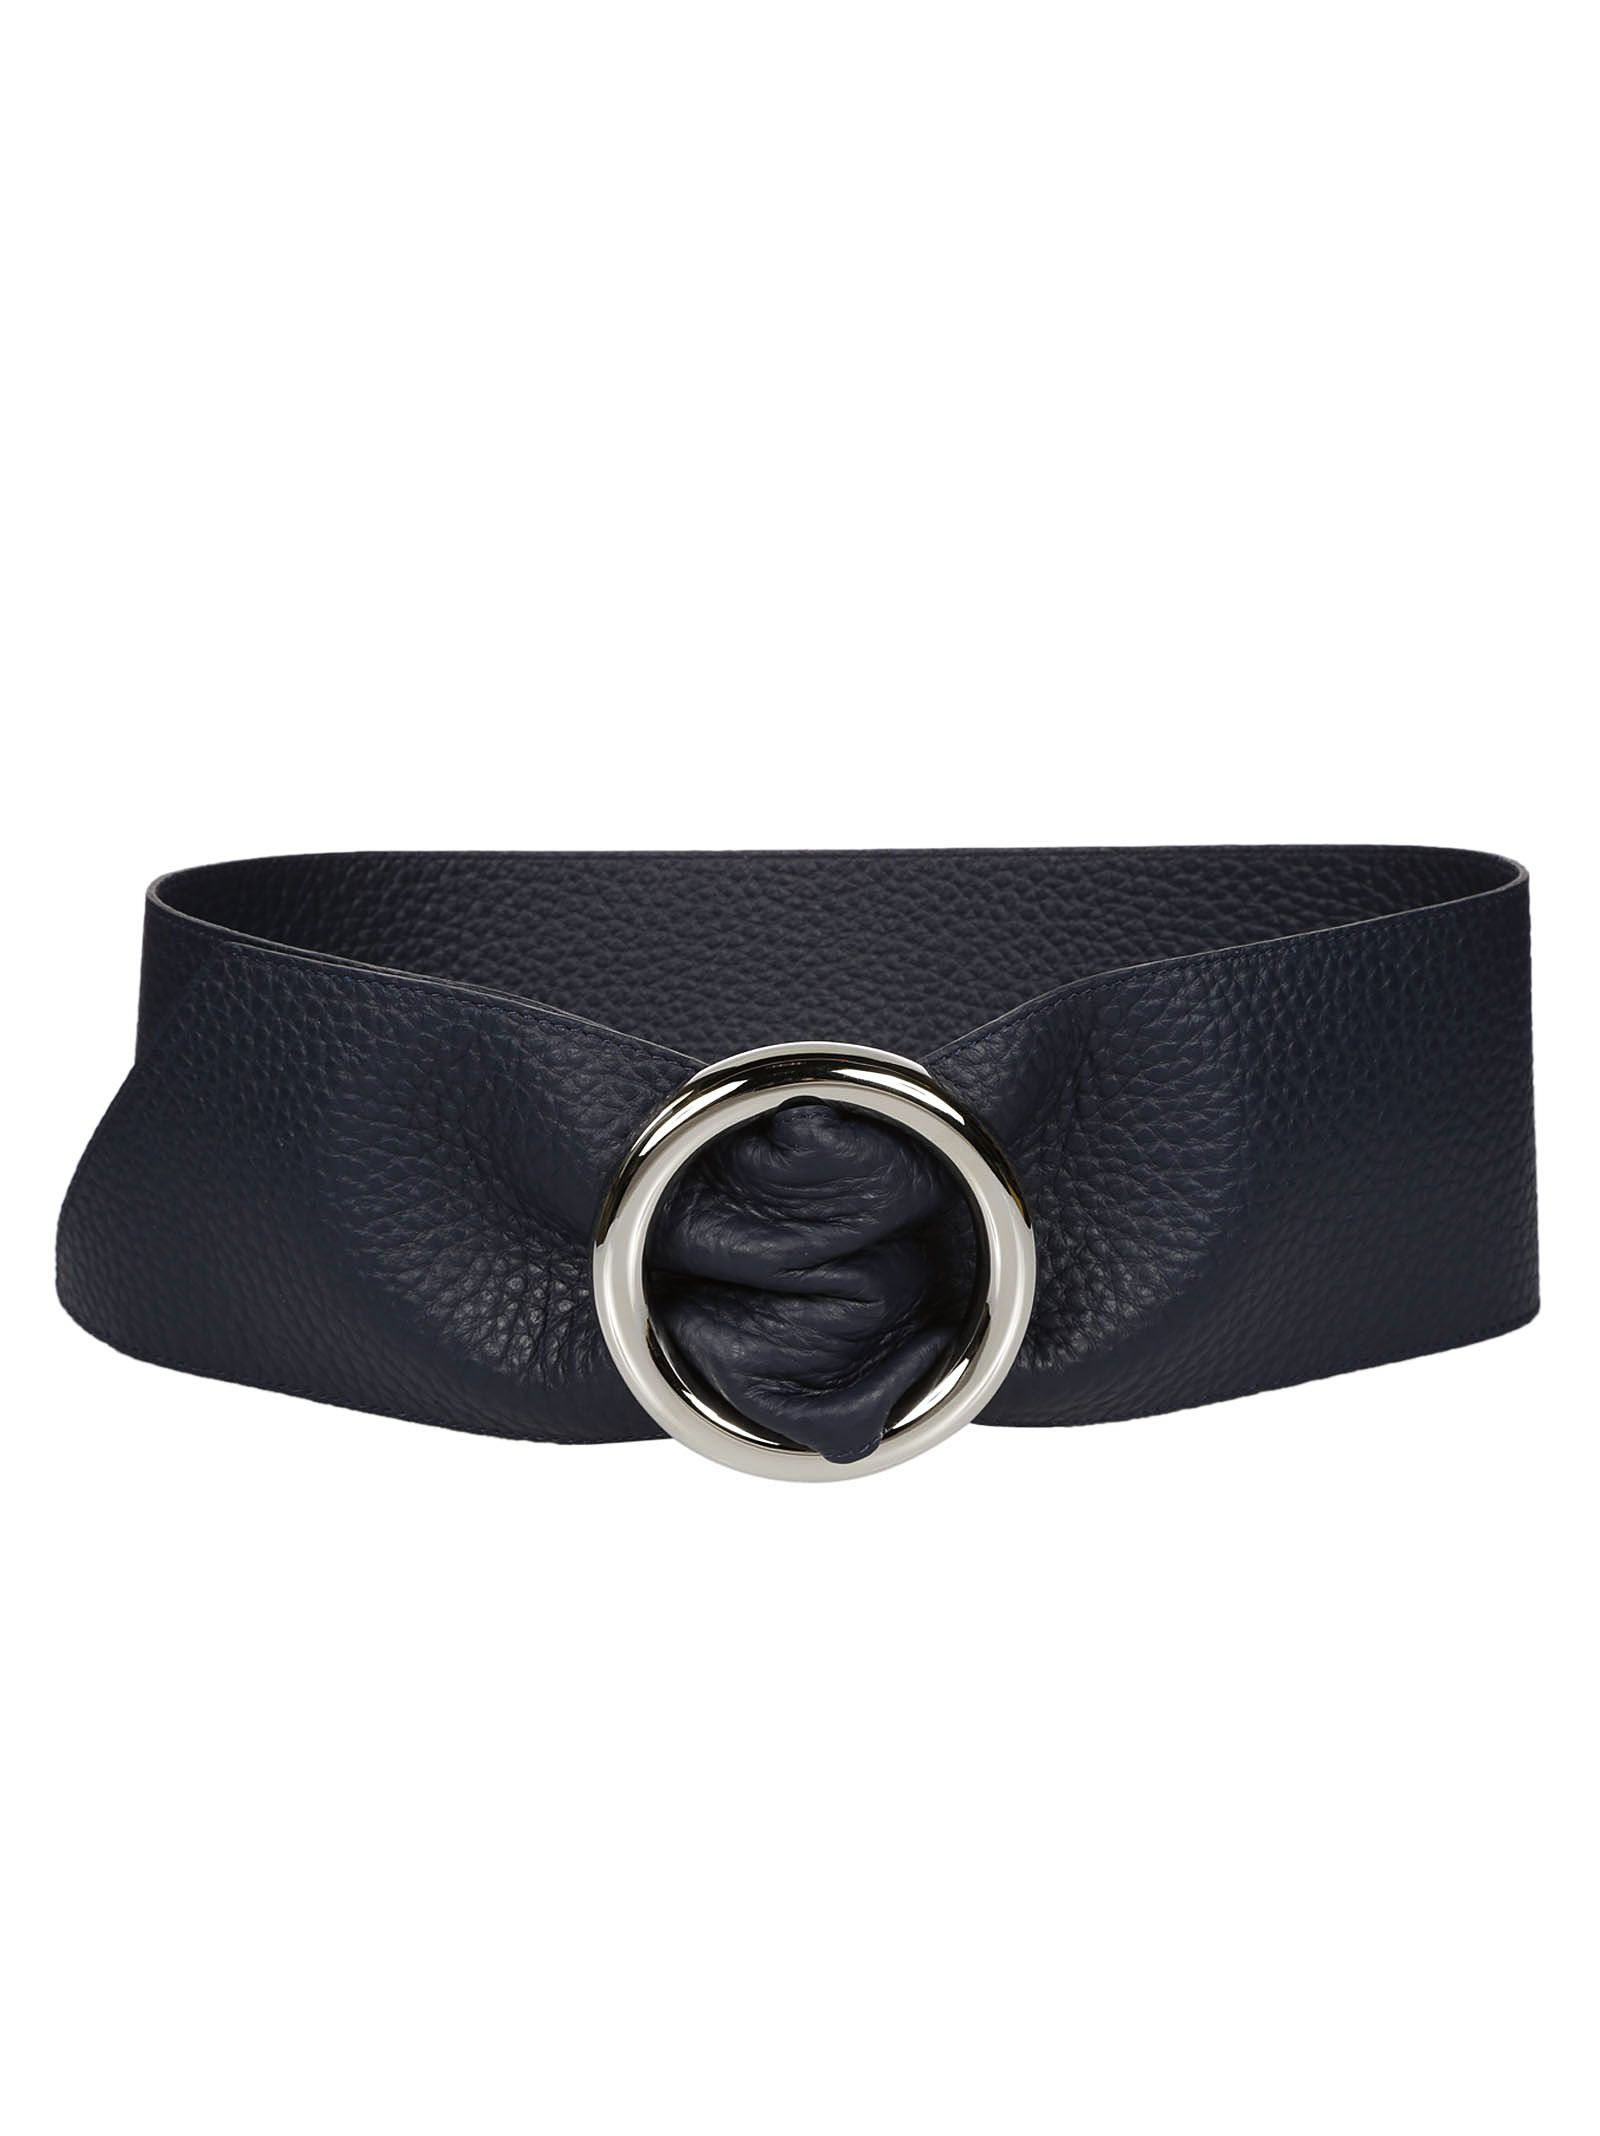 Orciani Soft Belt